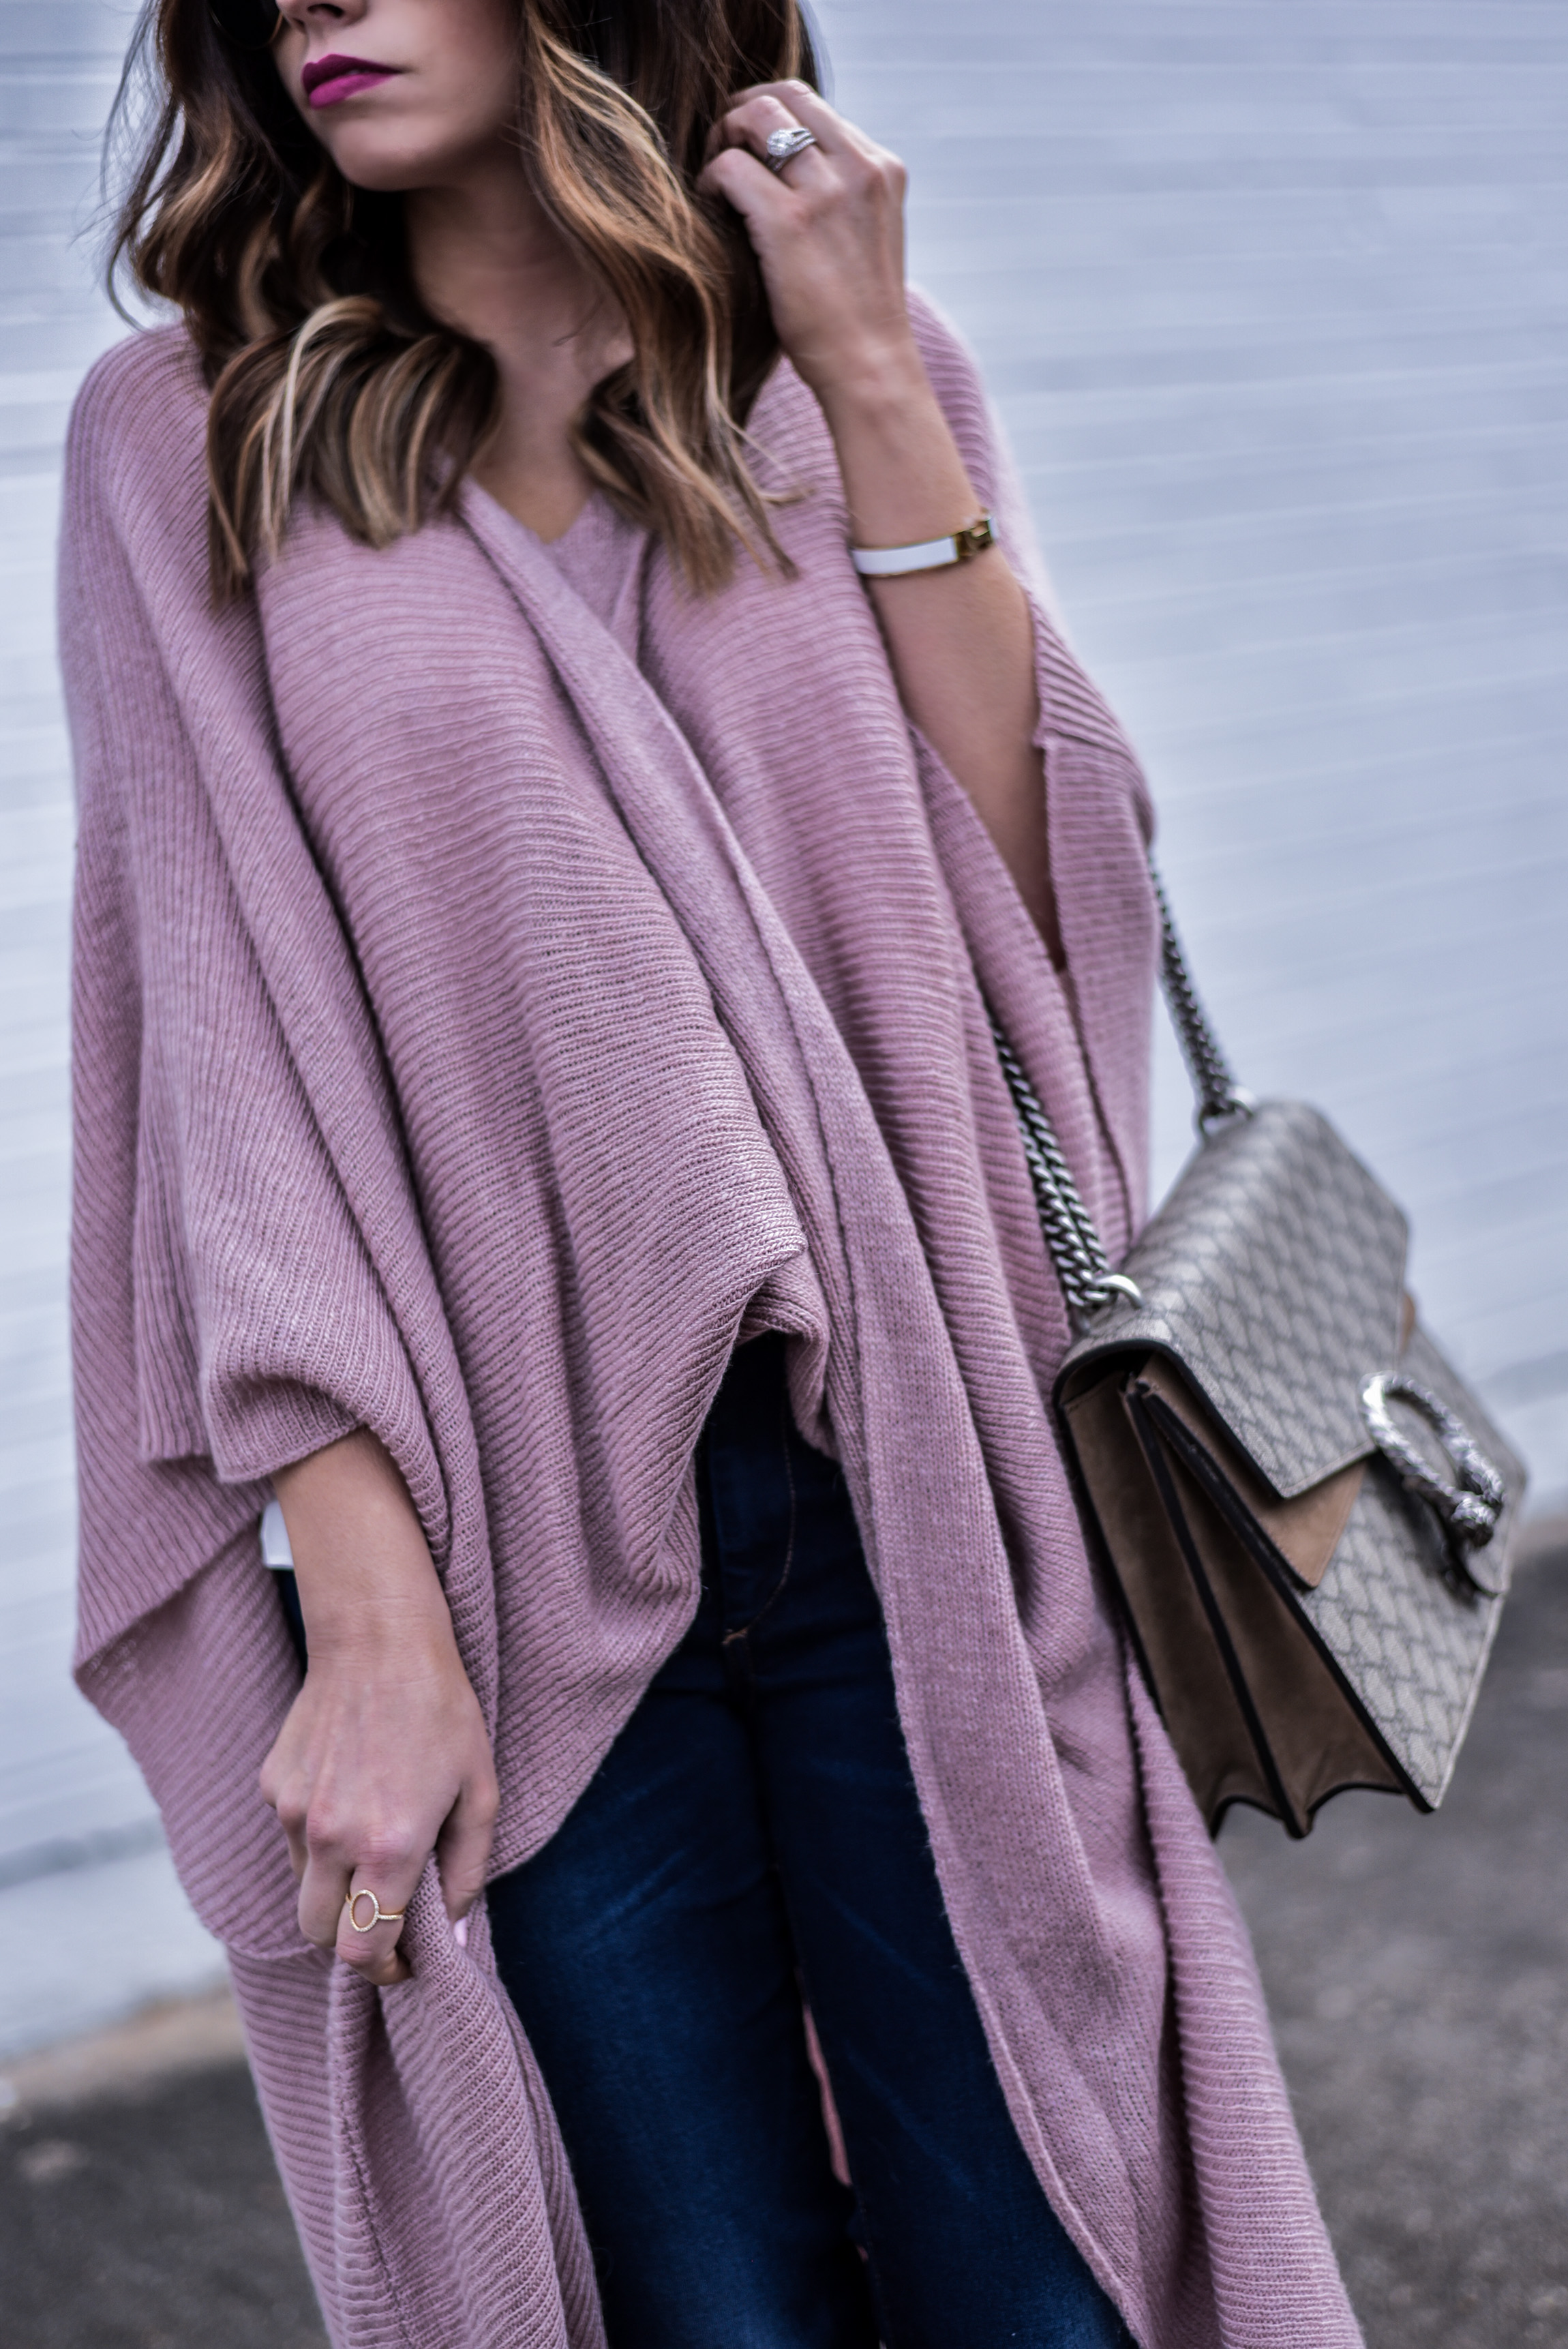 Houston fashion and style blogger Tiffany Jais wearing a poncho from Anthropologie and a Gucci Dionysus bag